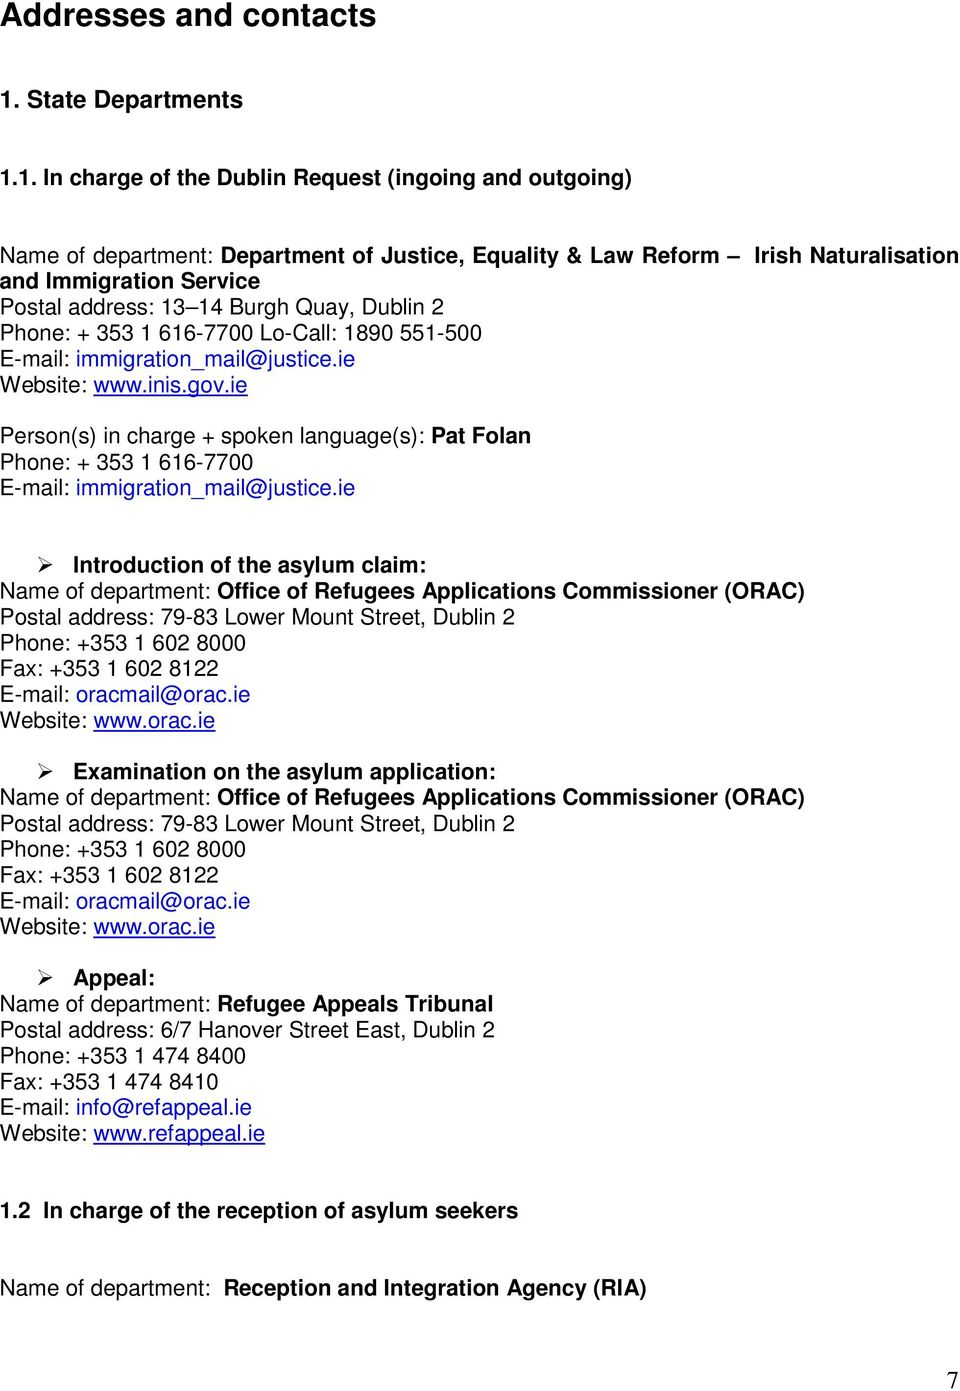 1. In charge of the Dublin Request (ingoing and outgoing) Name of department: Department of Justice, Equality & Law Reform Irish Naturalisation and Immigration Service Postal address: 13 14 Burgh